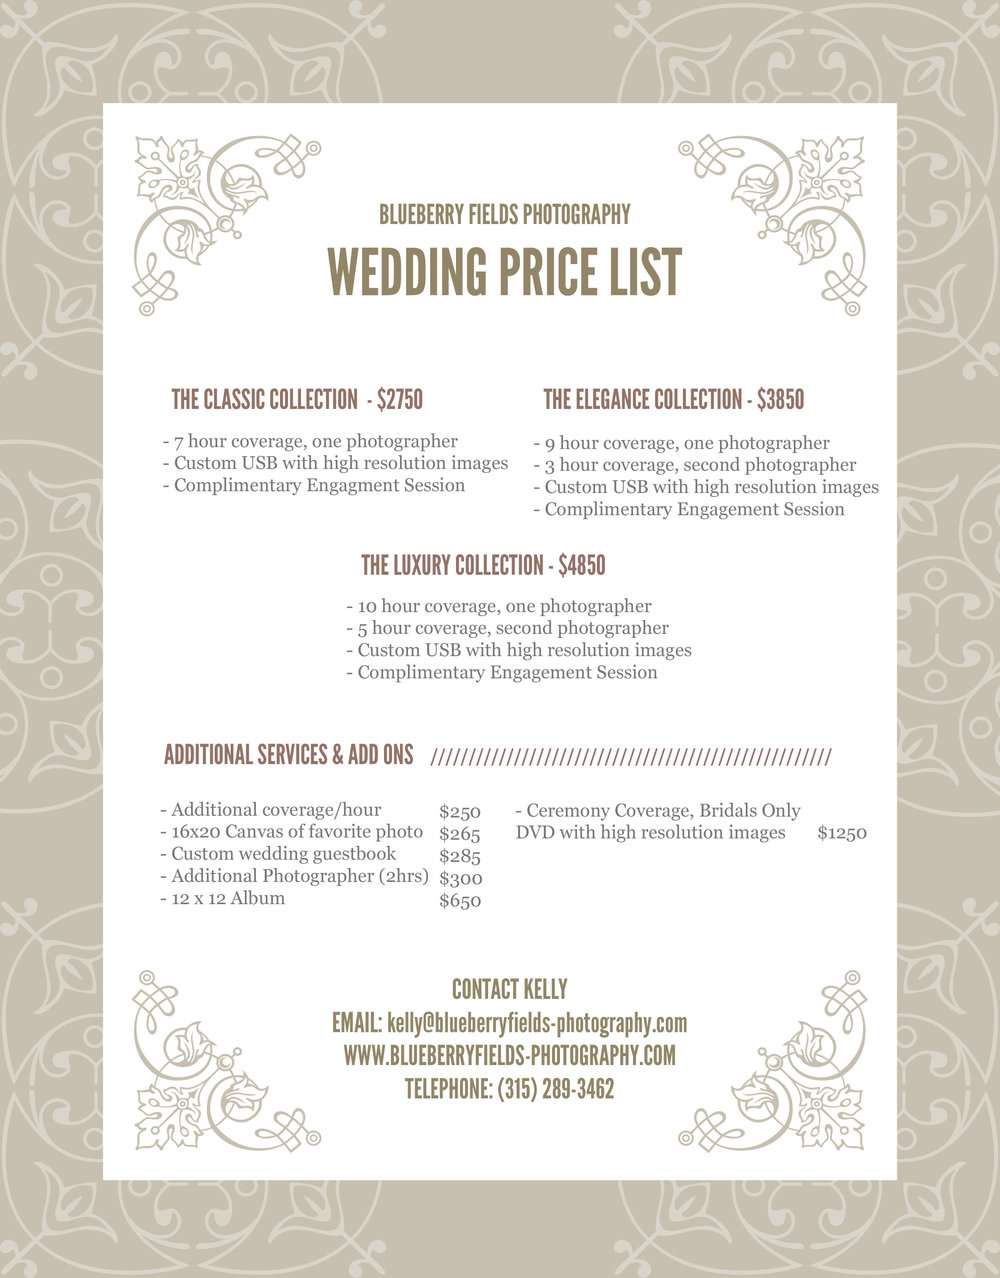 BFP Wedding Price Menu 2019.jpg